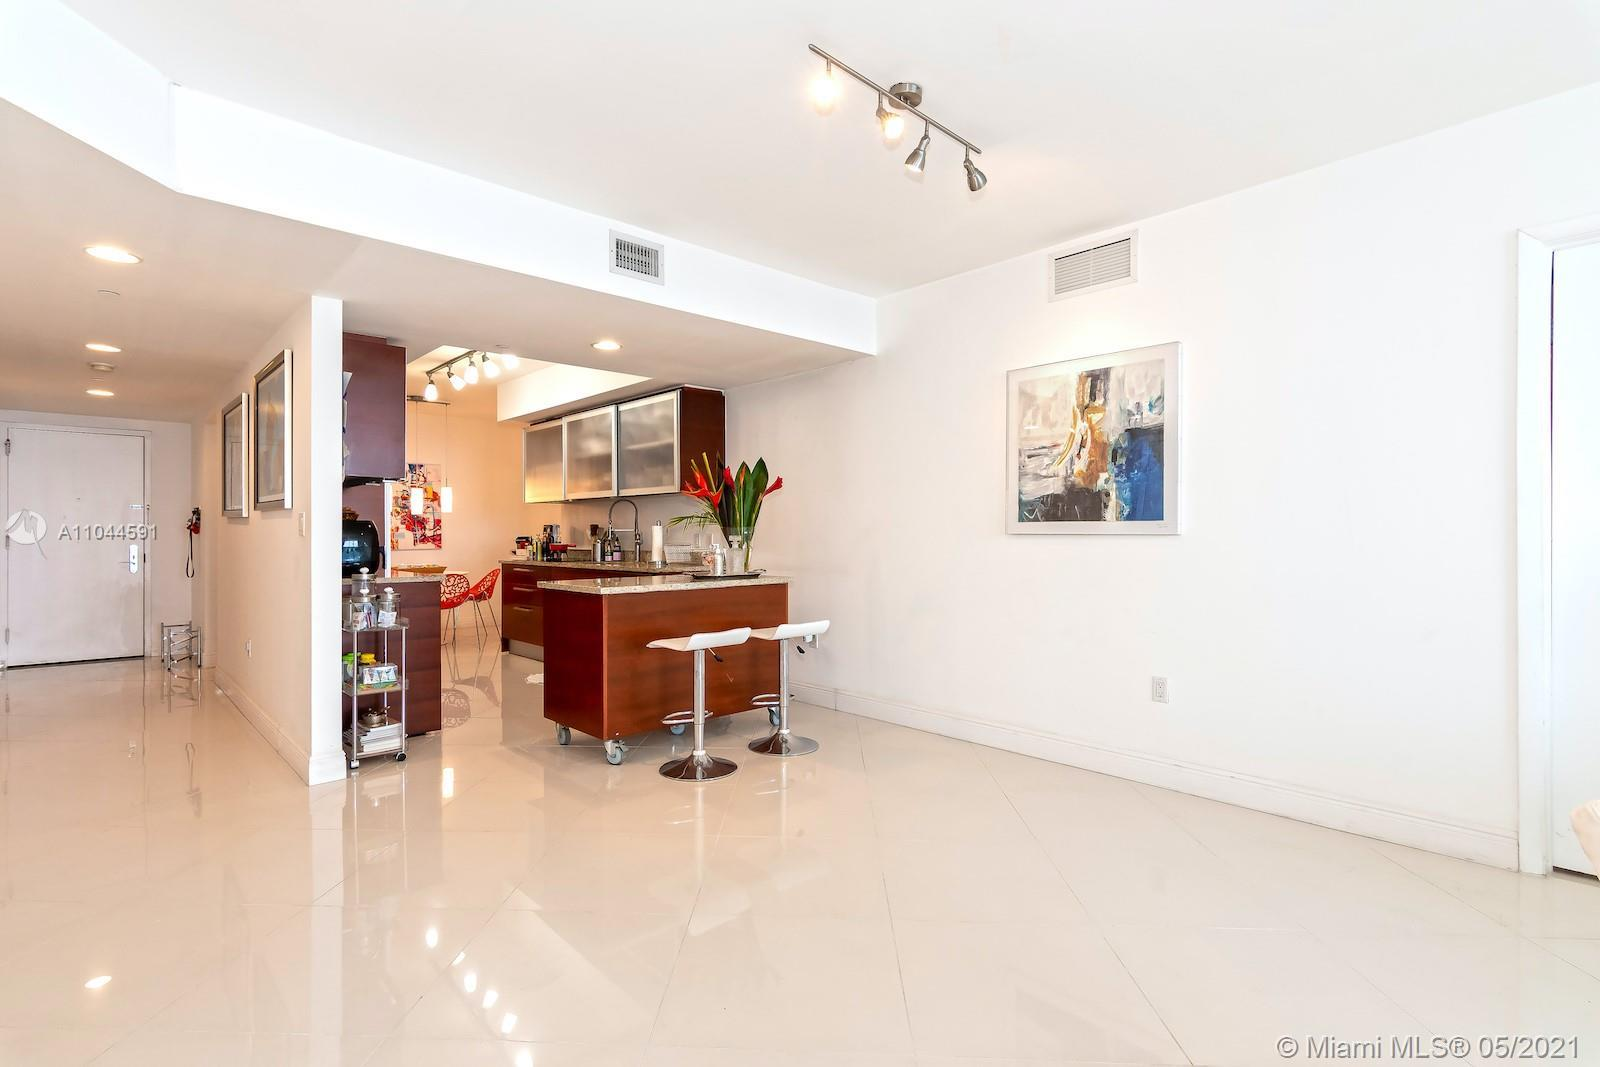 Direct ocean view from this unit in the fabulous Beach Club. 3 Beds/3 Full baths. 1,841SF with tile